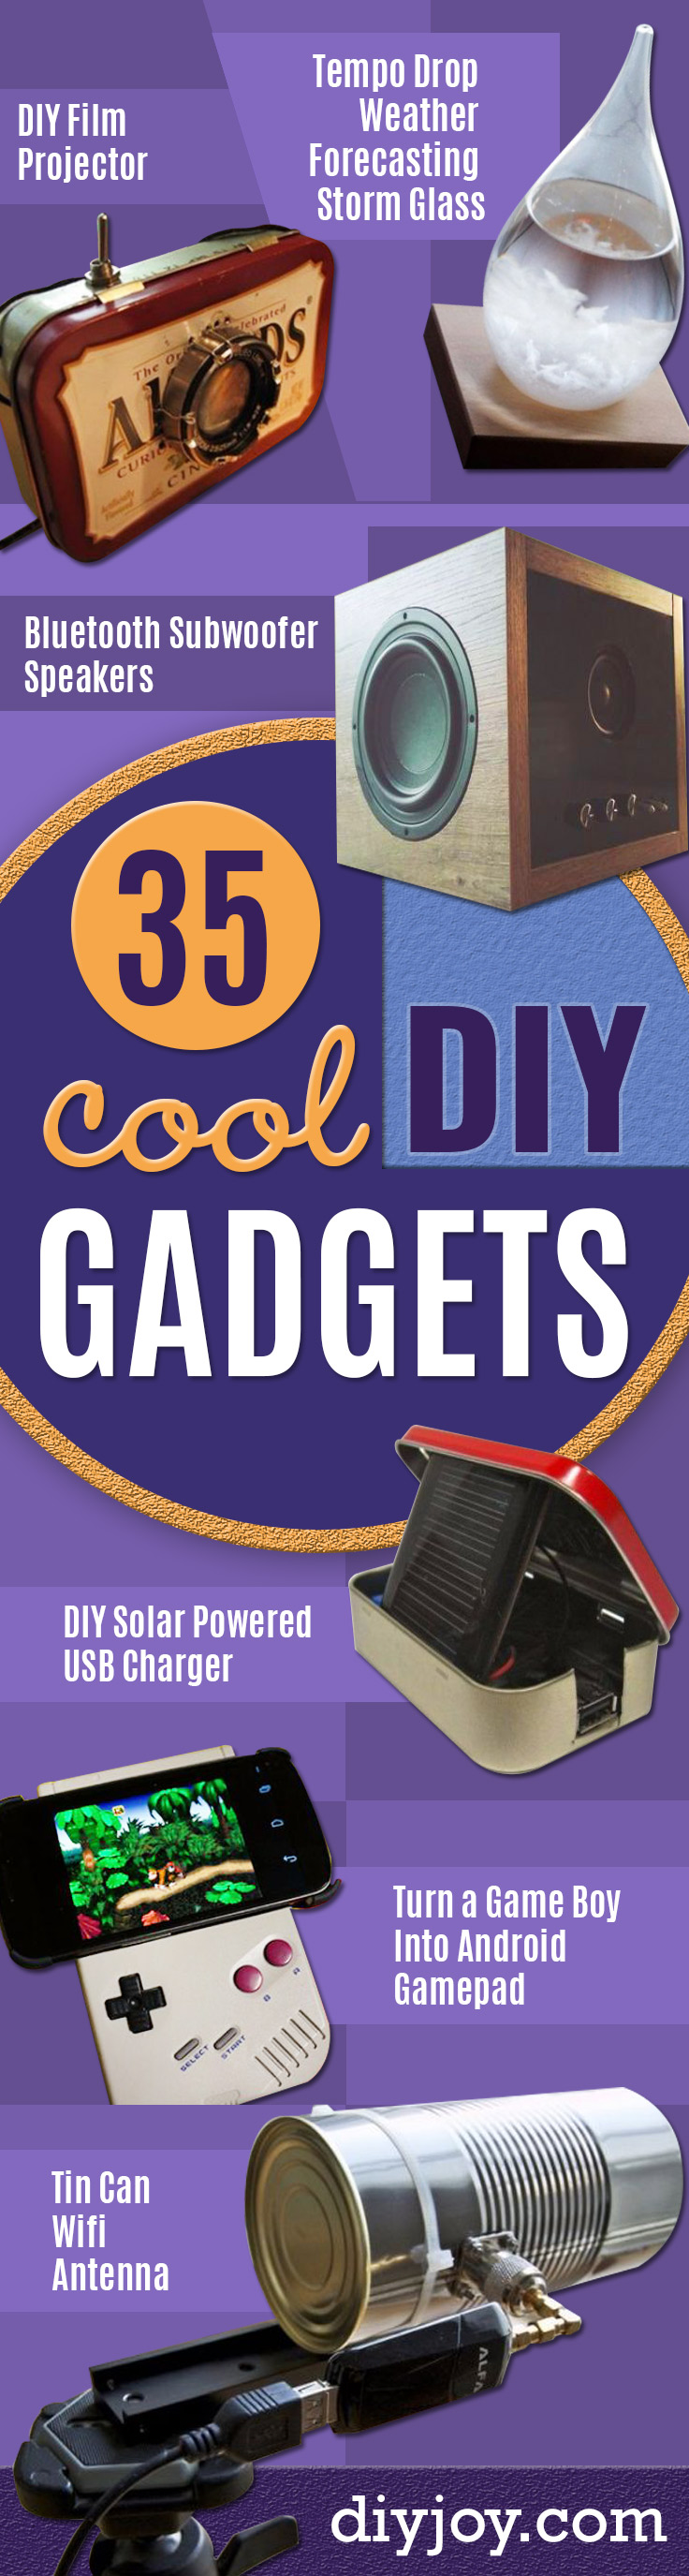 DIY Gadgets - Homemade Gadget Ideas and Projects for Men, Women, Teens and Kids - Steampunk Inventions, How To Build Easy Electronics, Cool Spy Gear and Do It Yourself Tech Toys